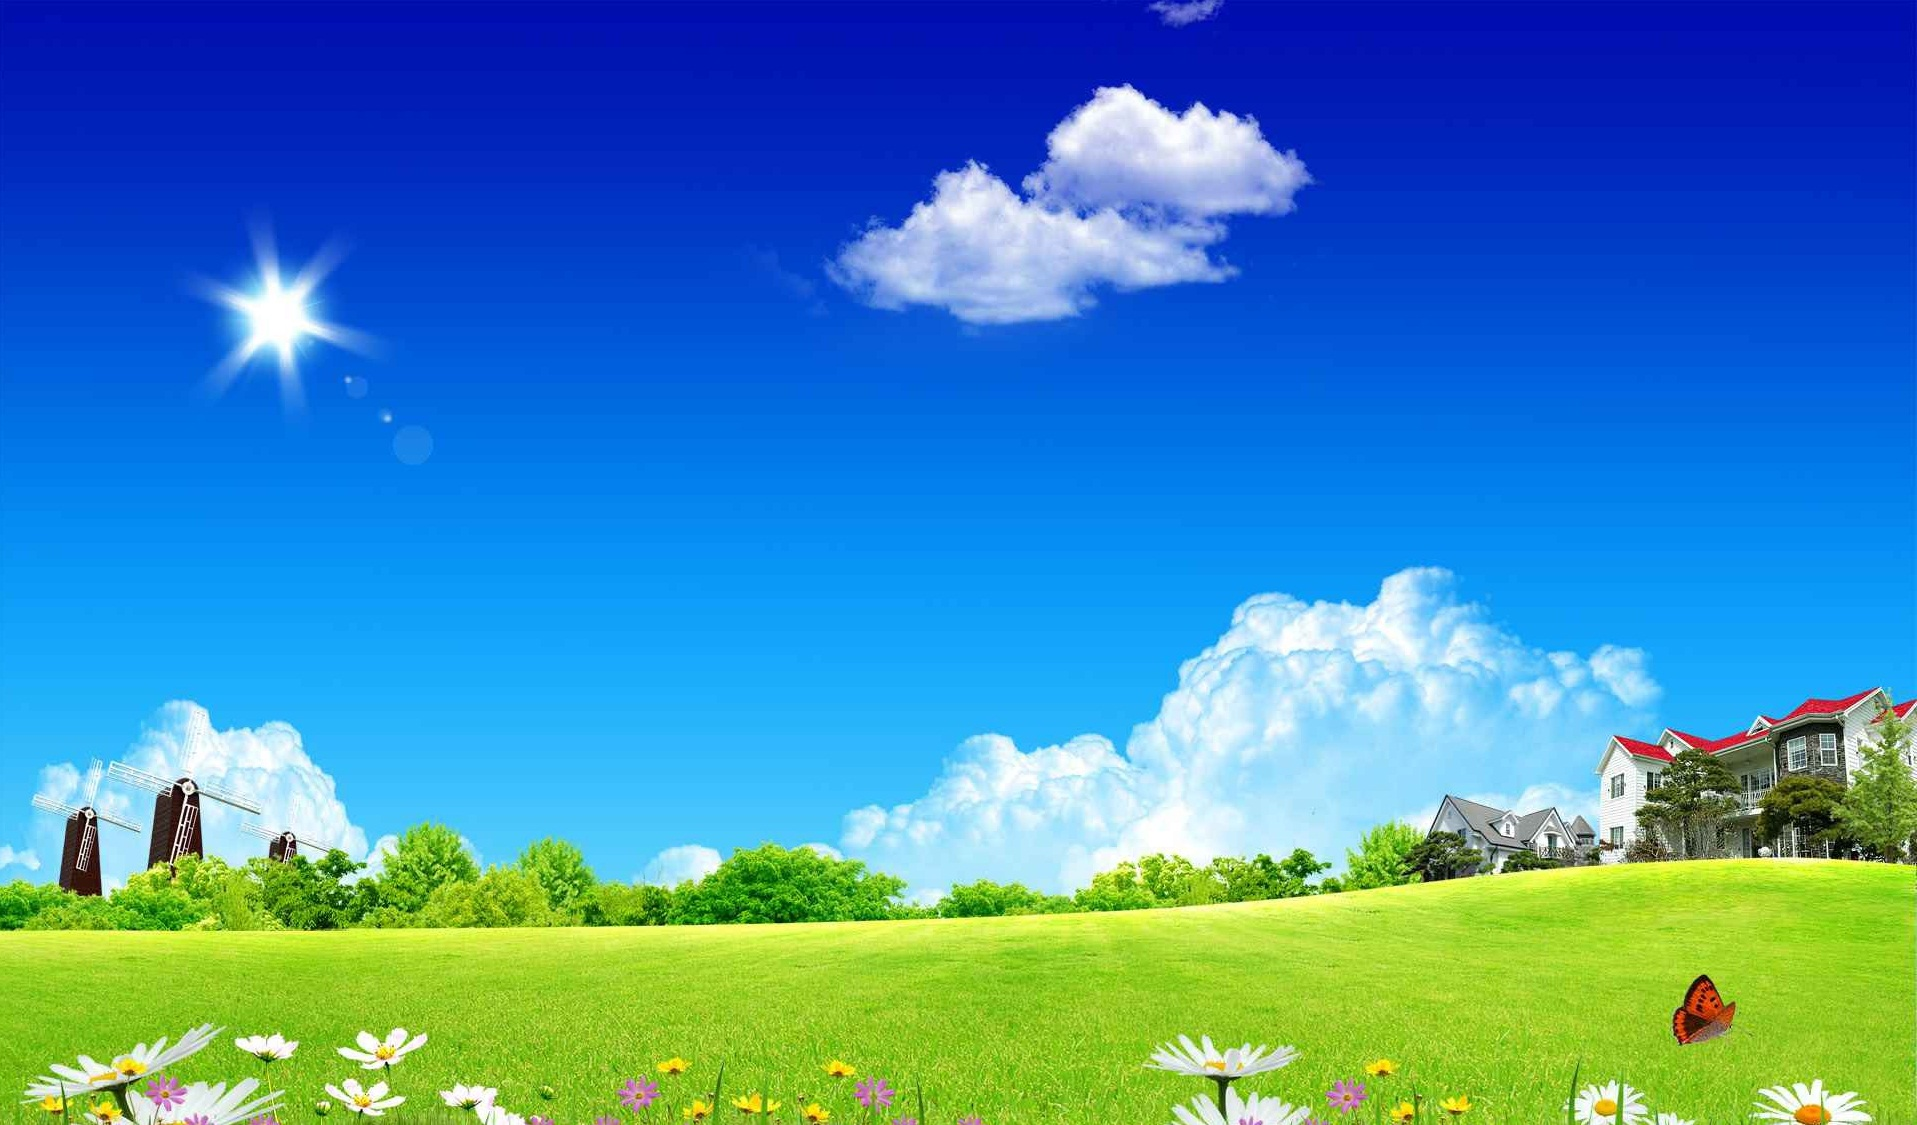 Background HD Images